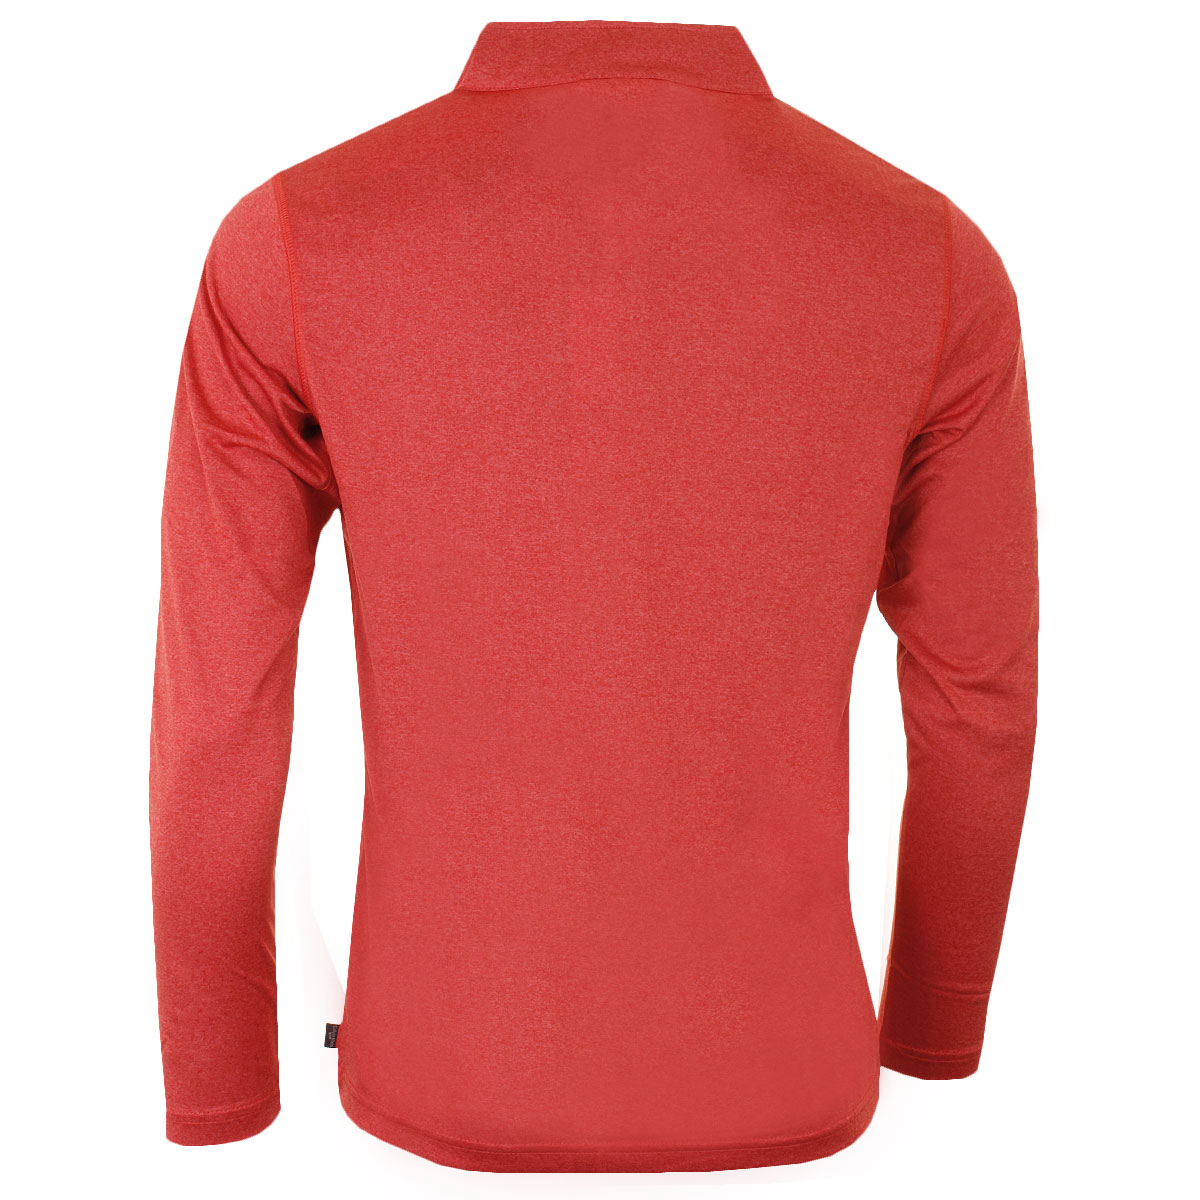 Calvin-Klein-Golf-Mens-2020-Harlem-1-4-Zip-Technical-CK-Sweater-28-OFF-RRP thumbnail 29